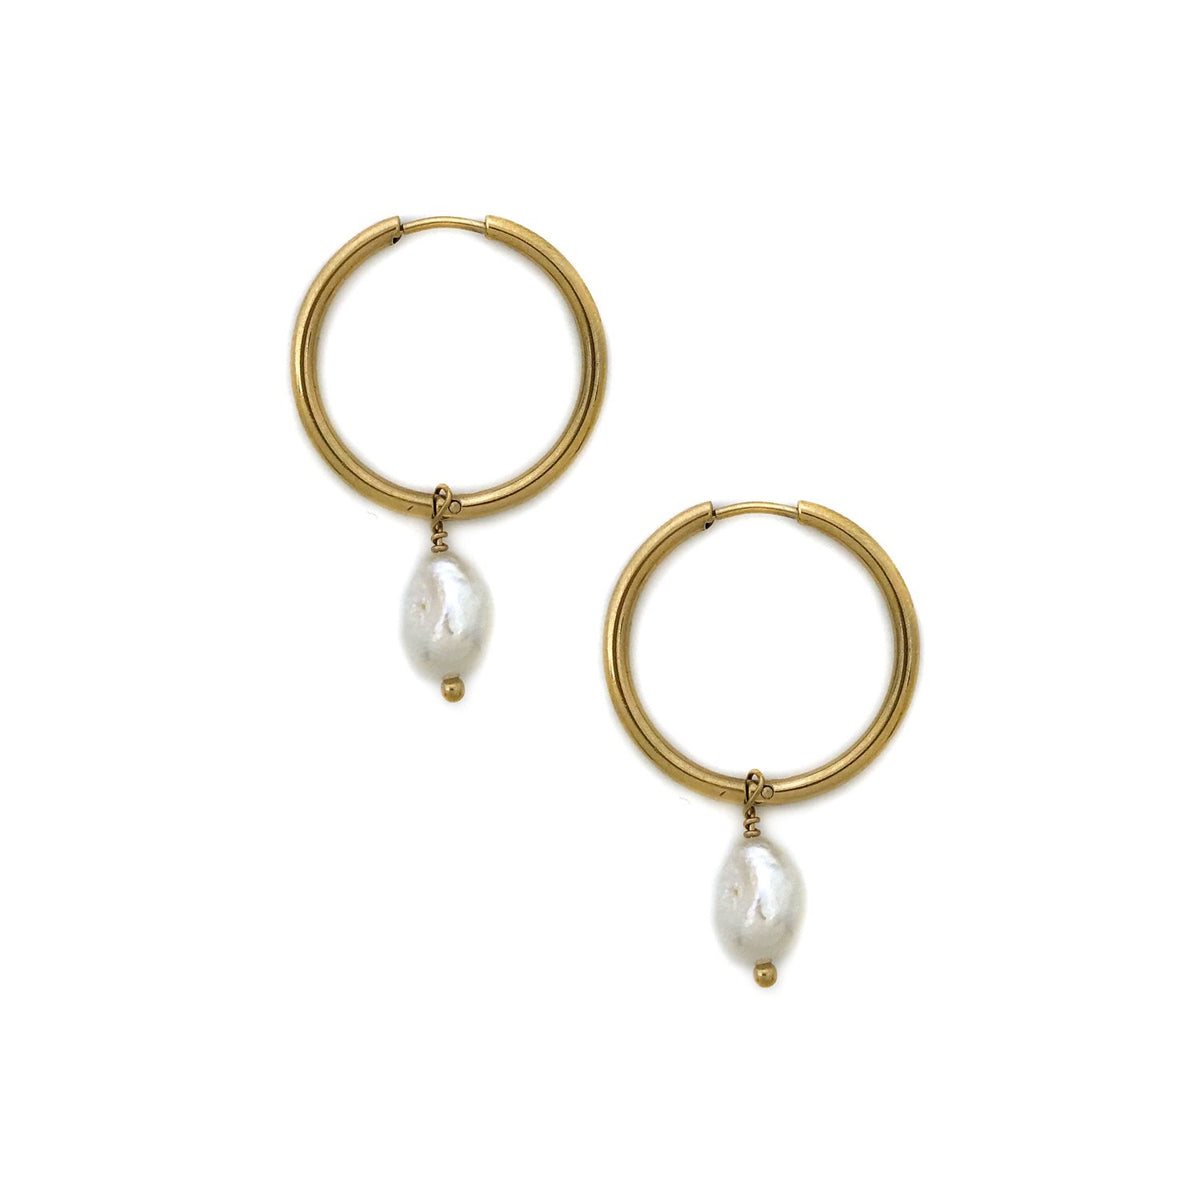 Valentina Earrings - Gold